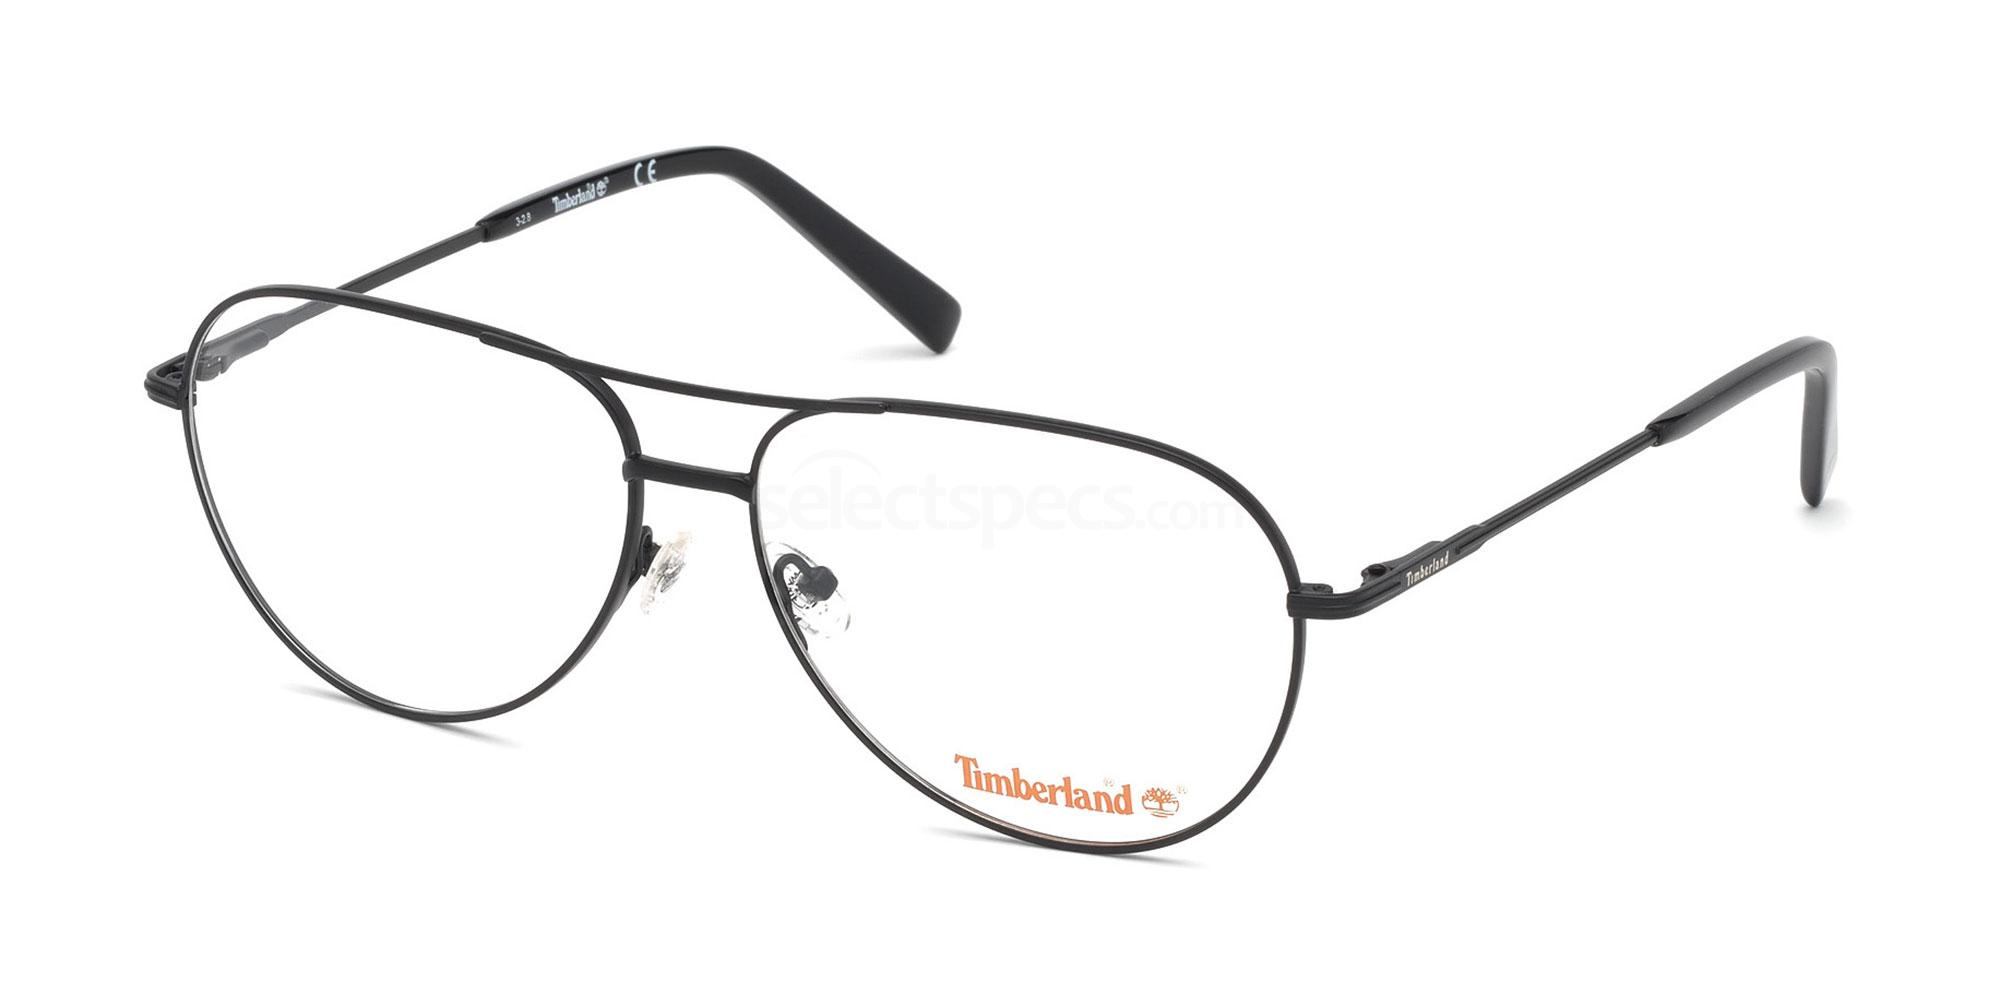 002 TB1630 Glasses, Timberland